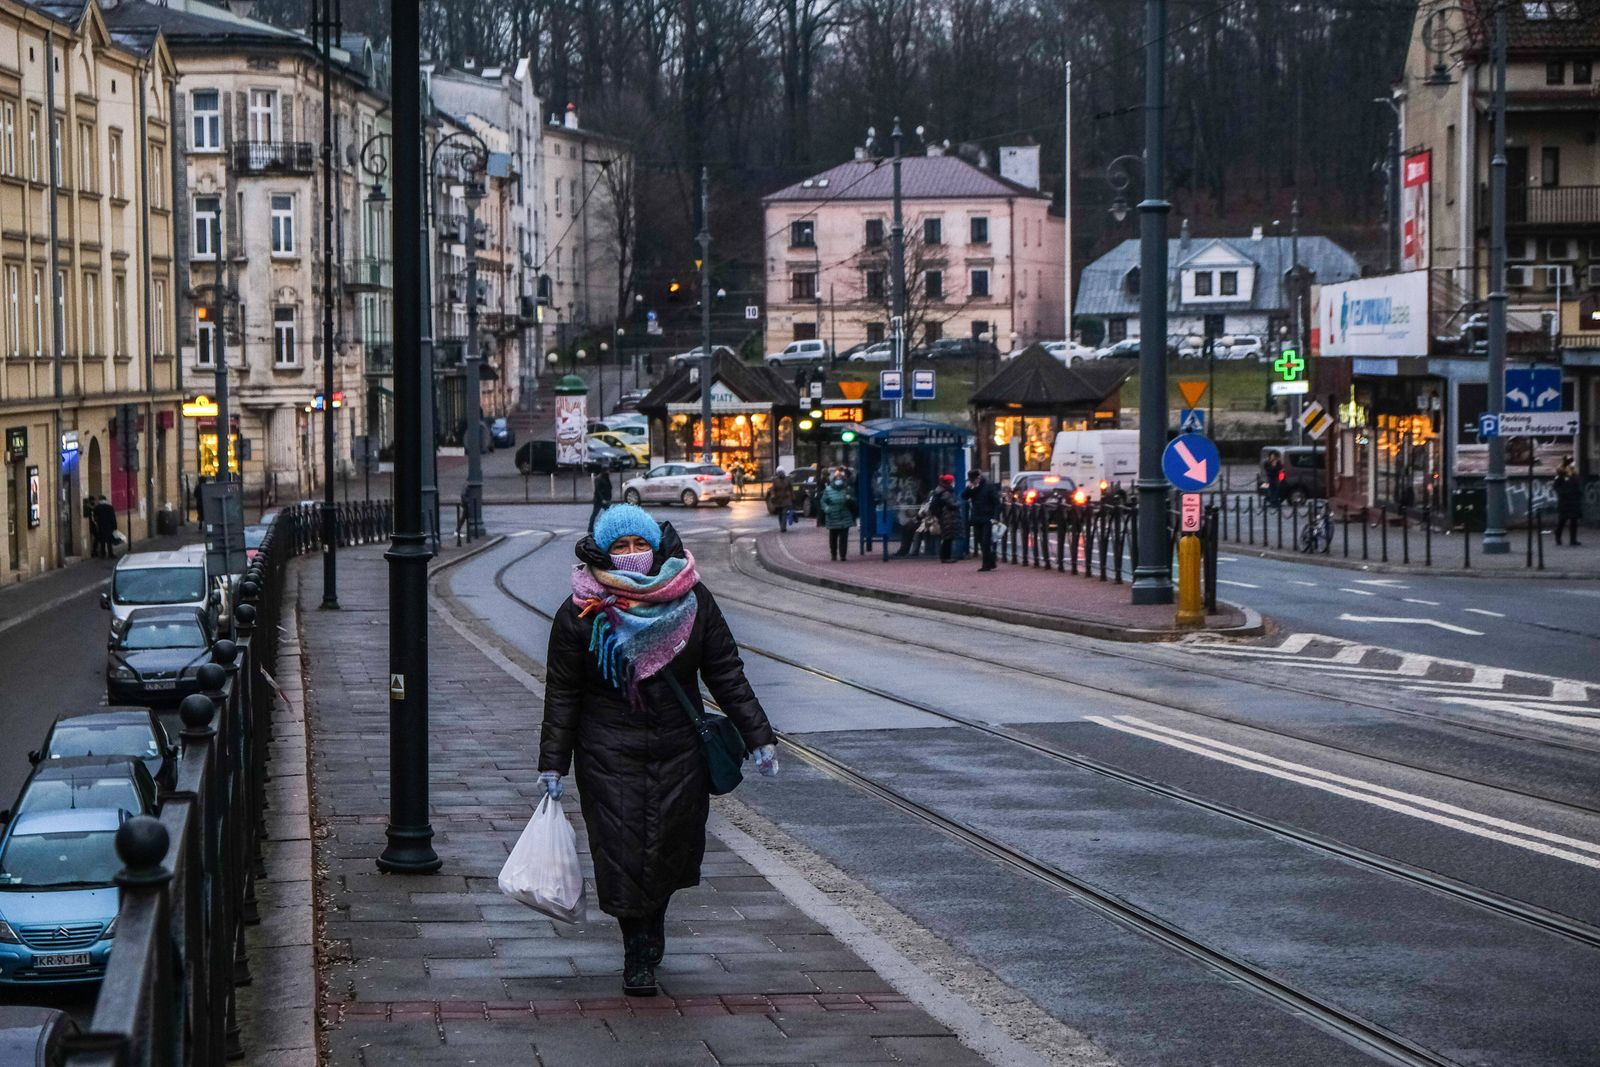 January 7, 2021, Krakow, Poland: A woman wearing a mask as a preventive measure against the spread of covid-19 walks alo